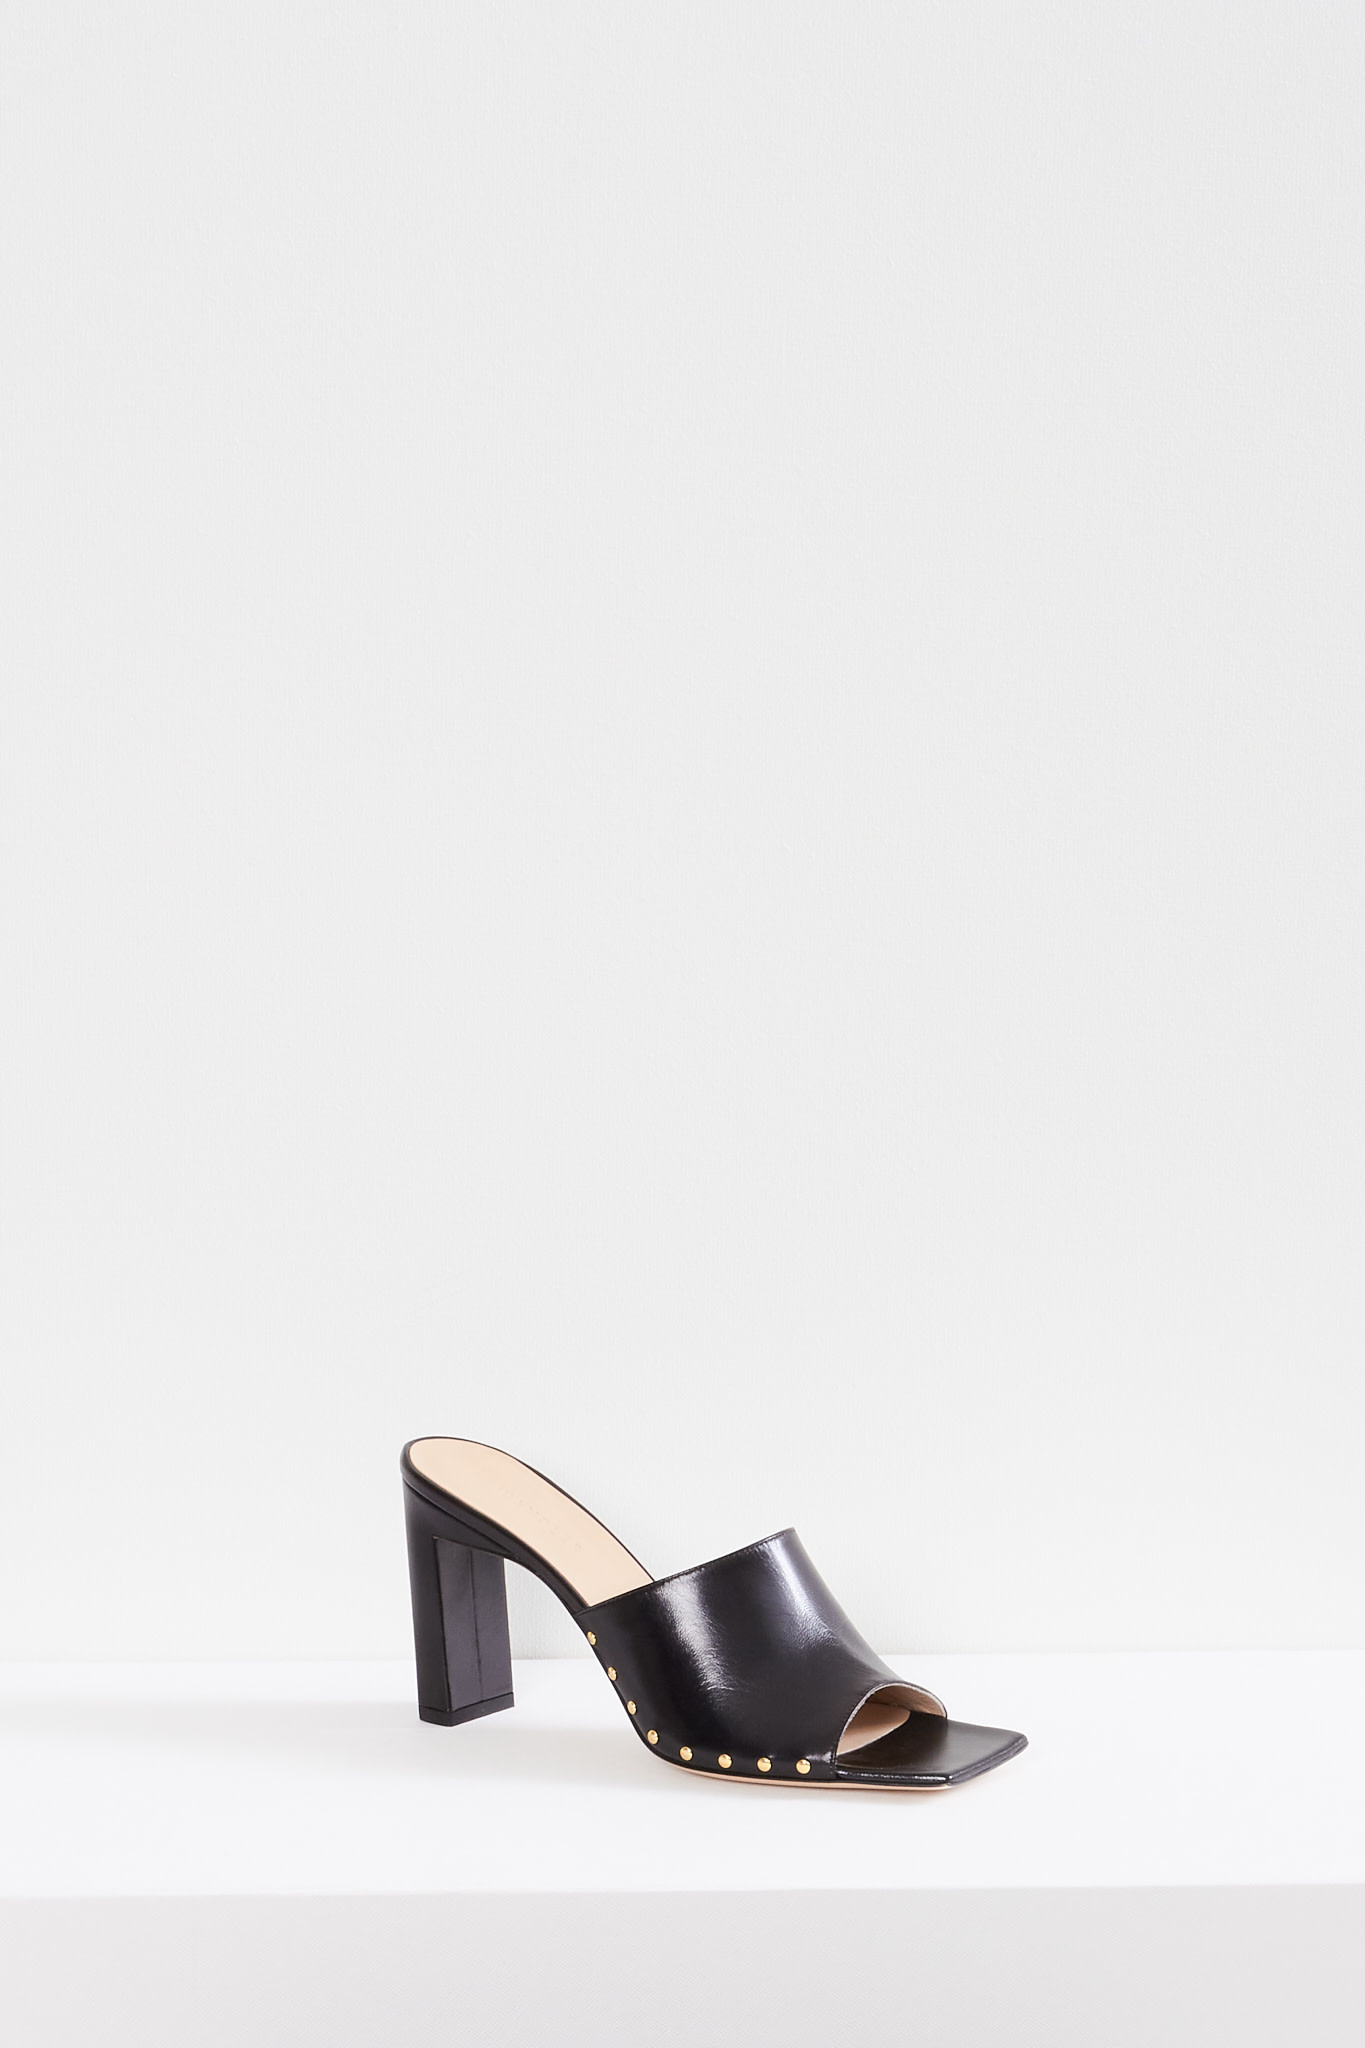 Wandler Nana mule lambskin leather